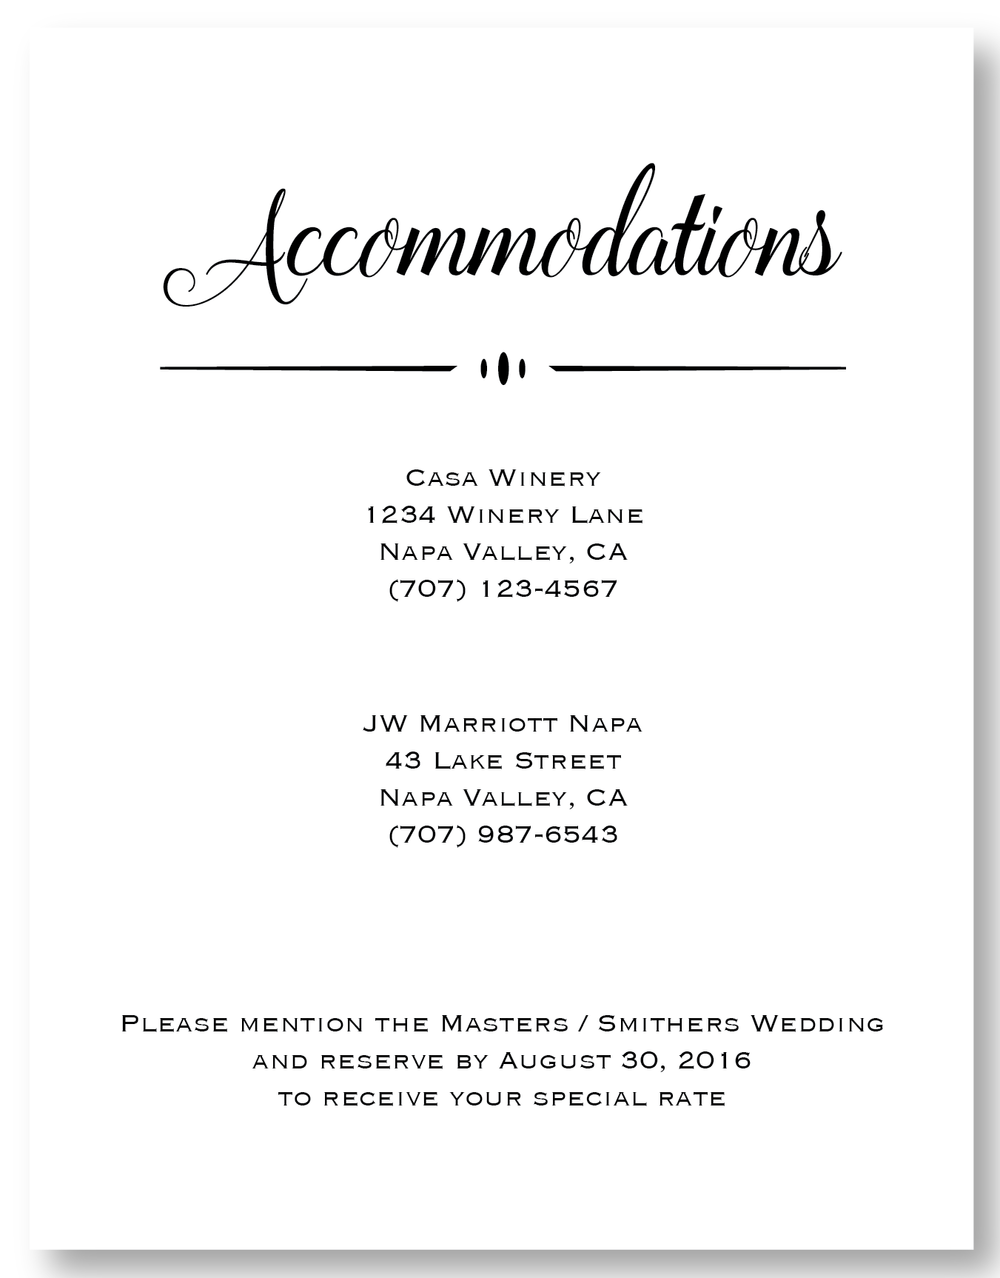 The Napa Valley - Accommodation Card